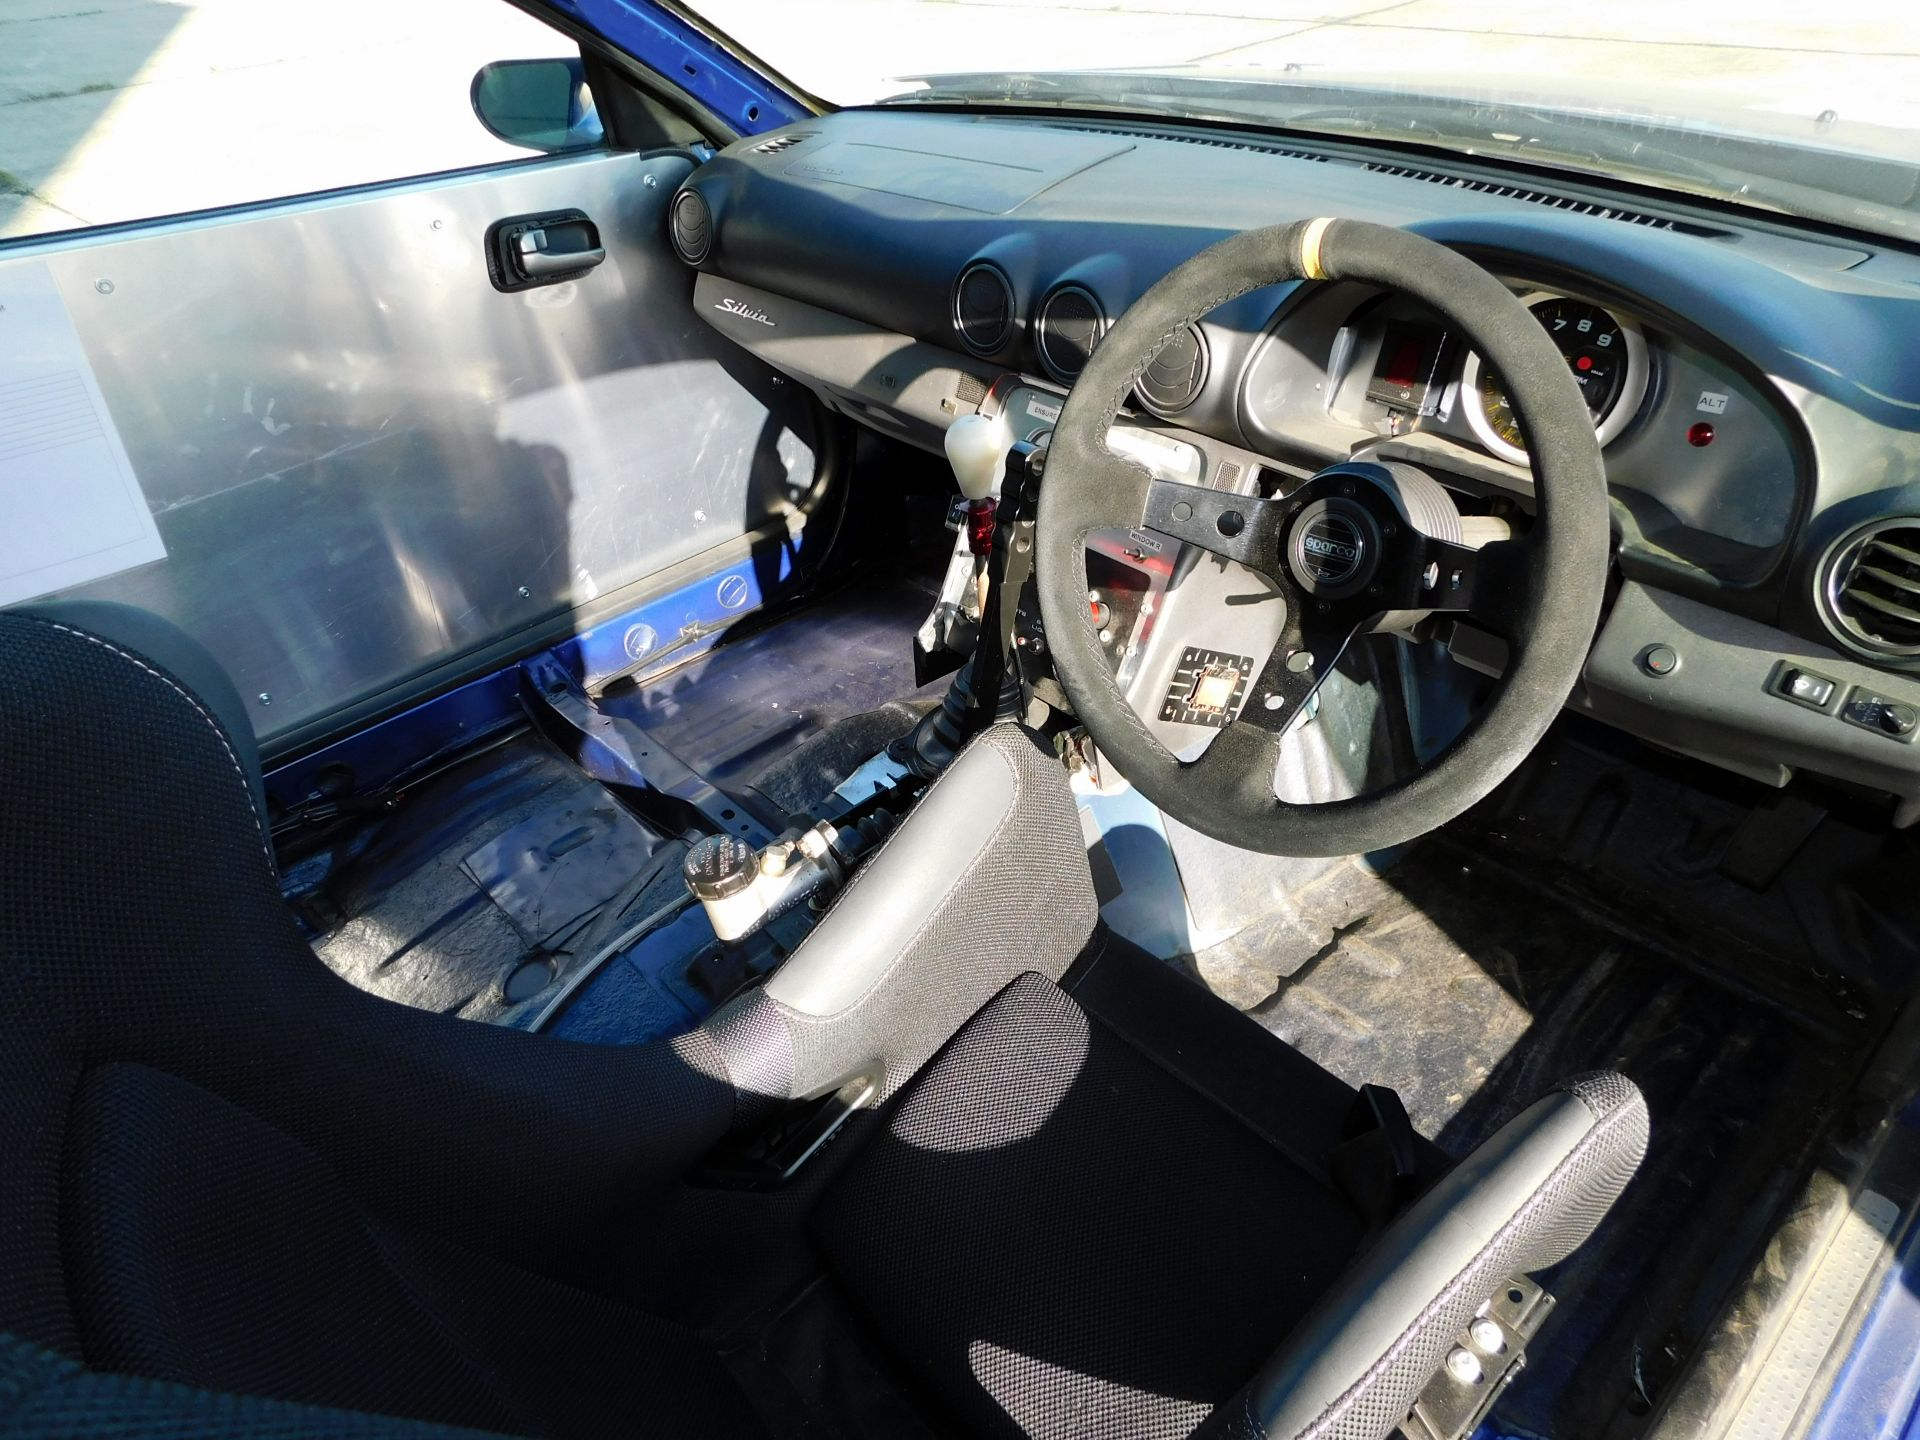 Nissan Silvia S15 2 door Coupe, LS3 V8 6.2 Litre Engine, Quaife 6 Speed Sequential Gearbox, - Image 7 of 12